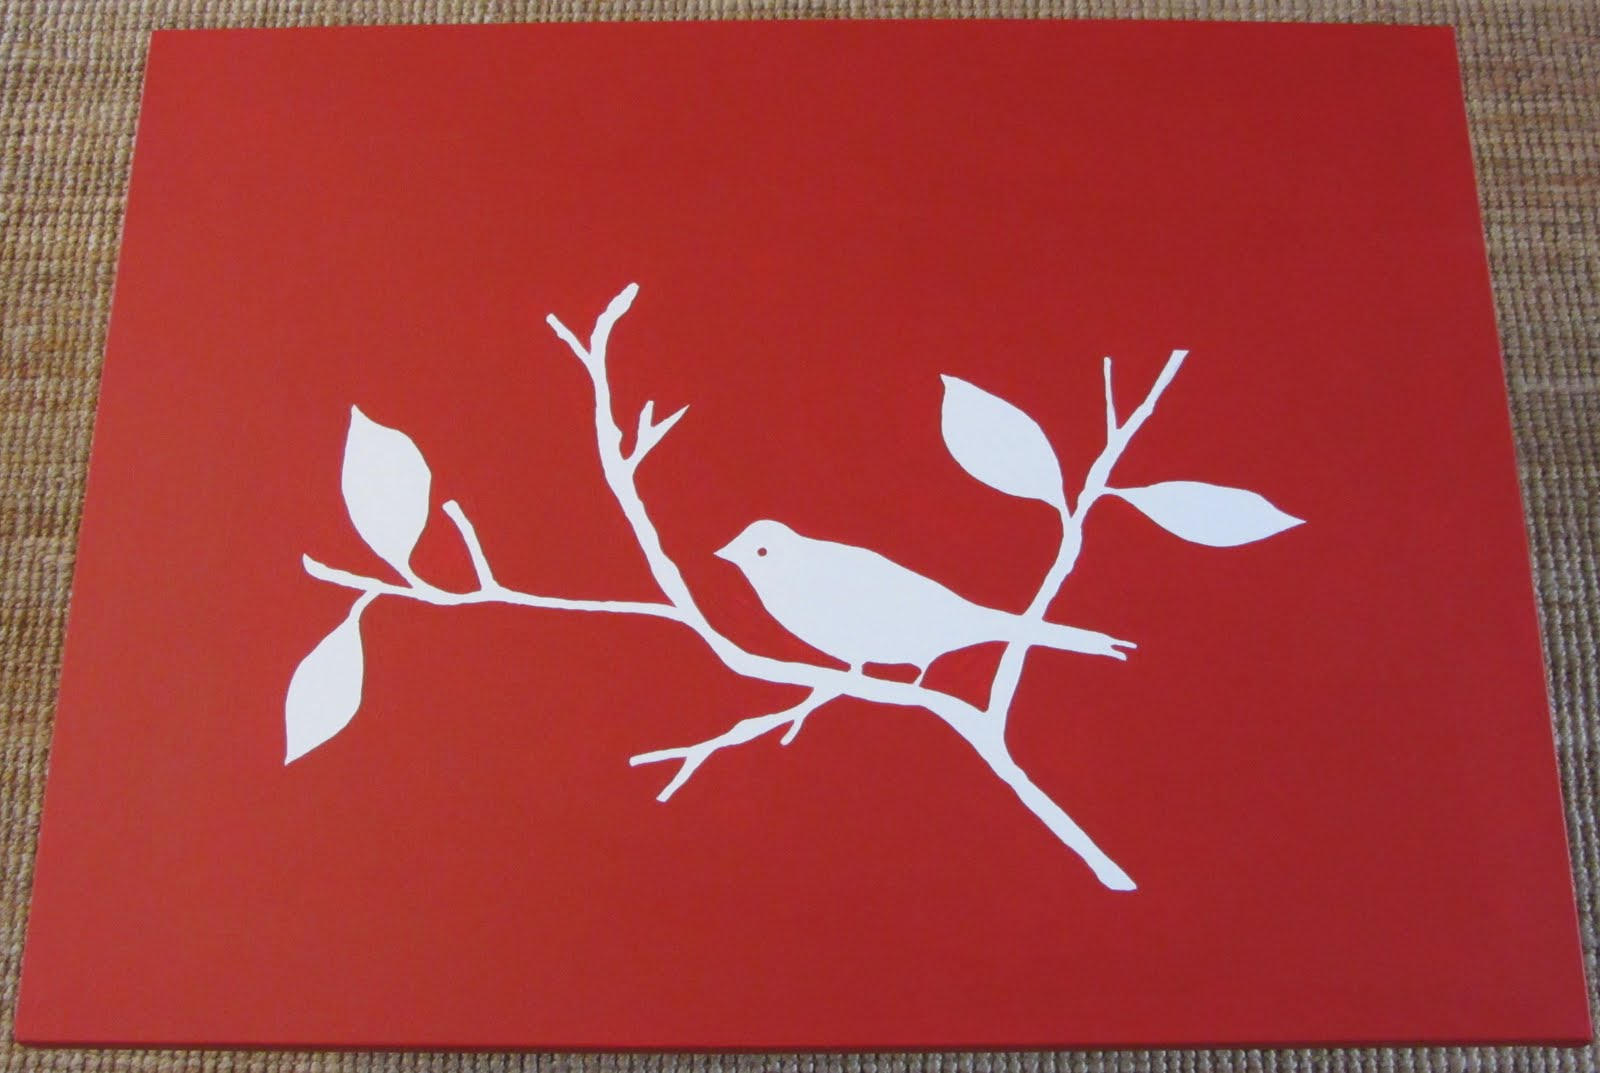 thom haus handmade simple red bird canvas